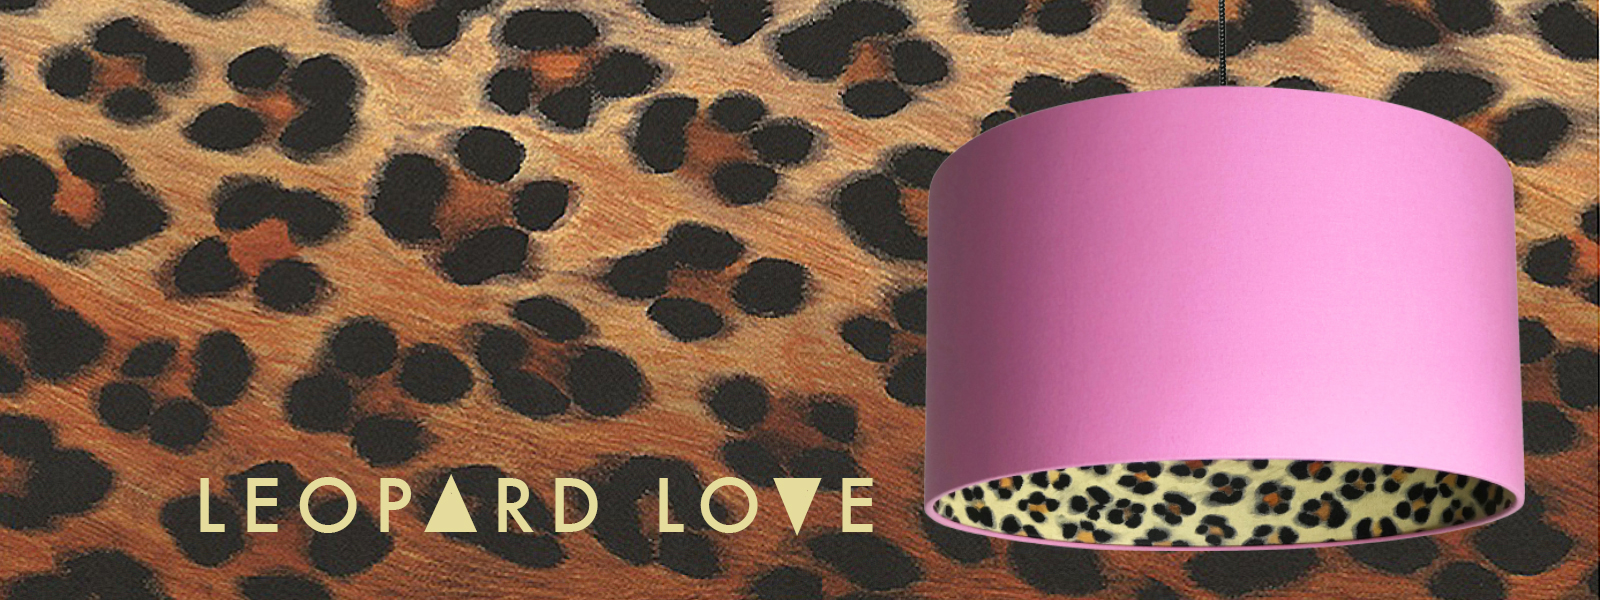 Leopard Love Animal Print Made to Order Lampshades